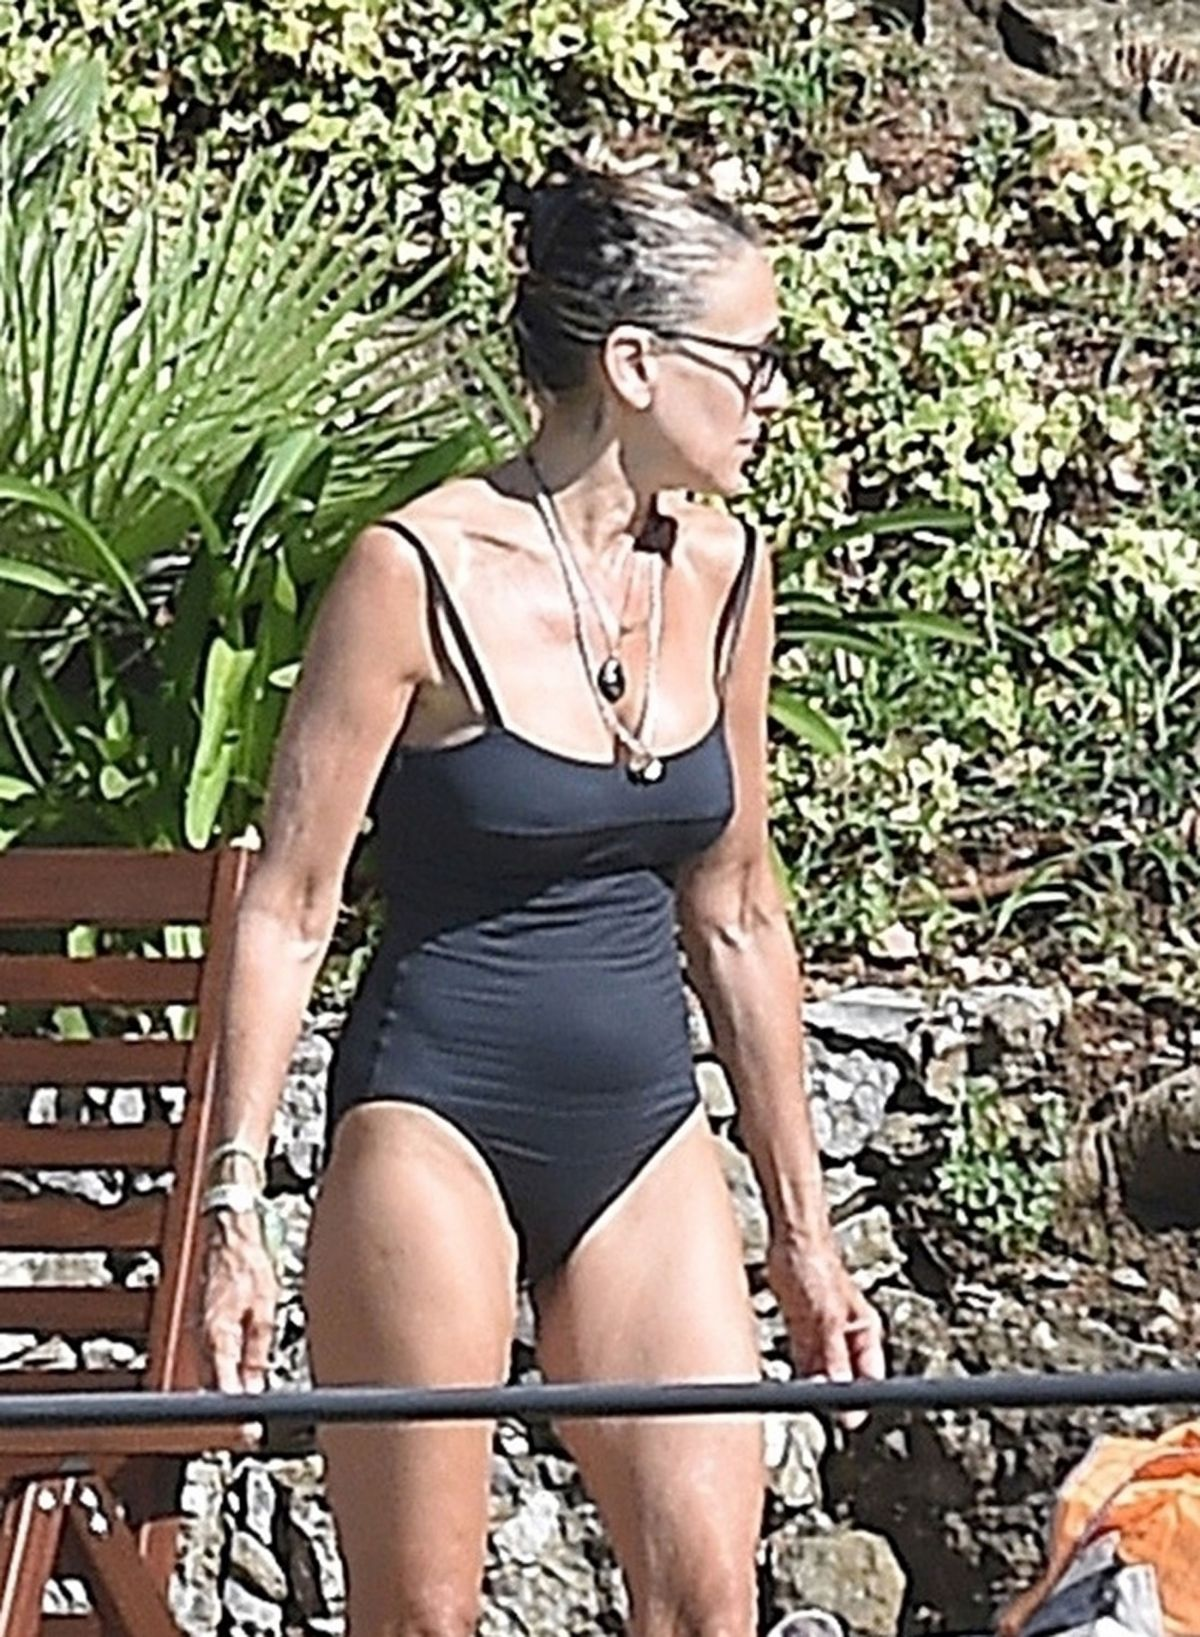 Portofino In Sarah At Parker Jessica A Beach 07172018 Swimsuit bf7gYy6